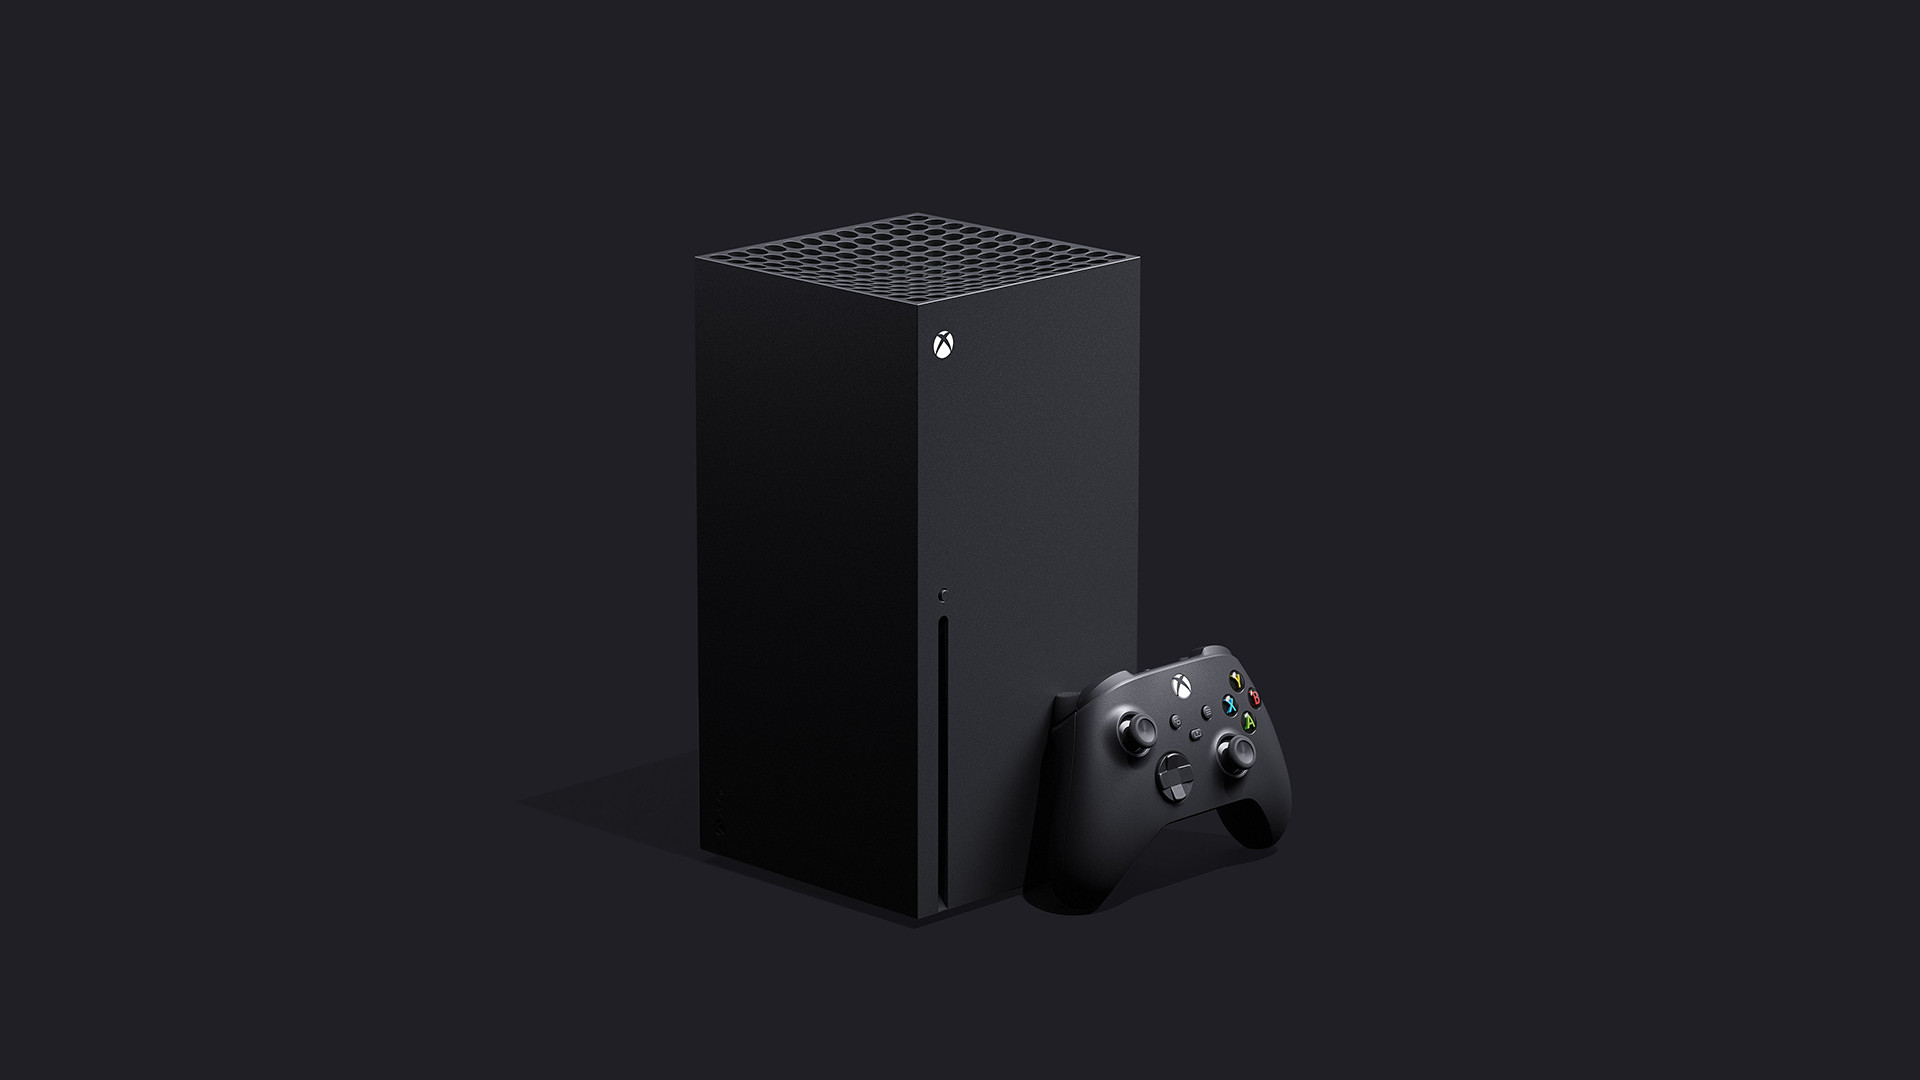 Power Your Dreams with Xbox Series X, Available Holiday (2020).